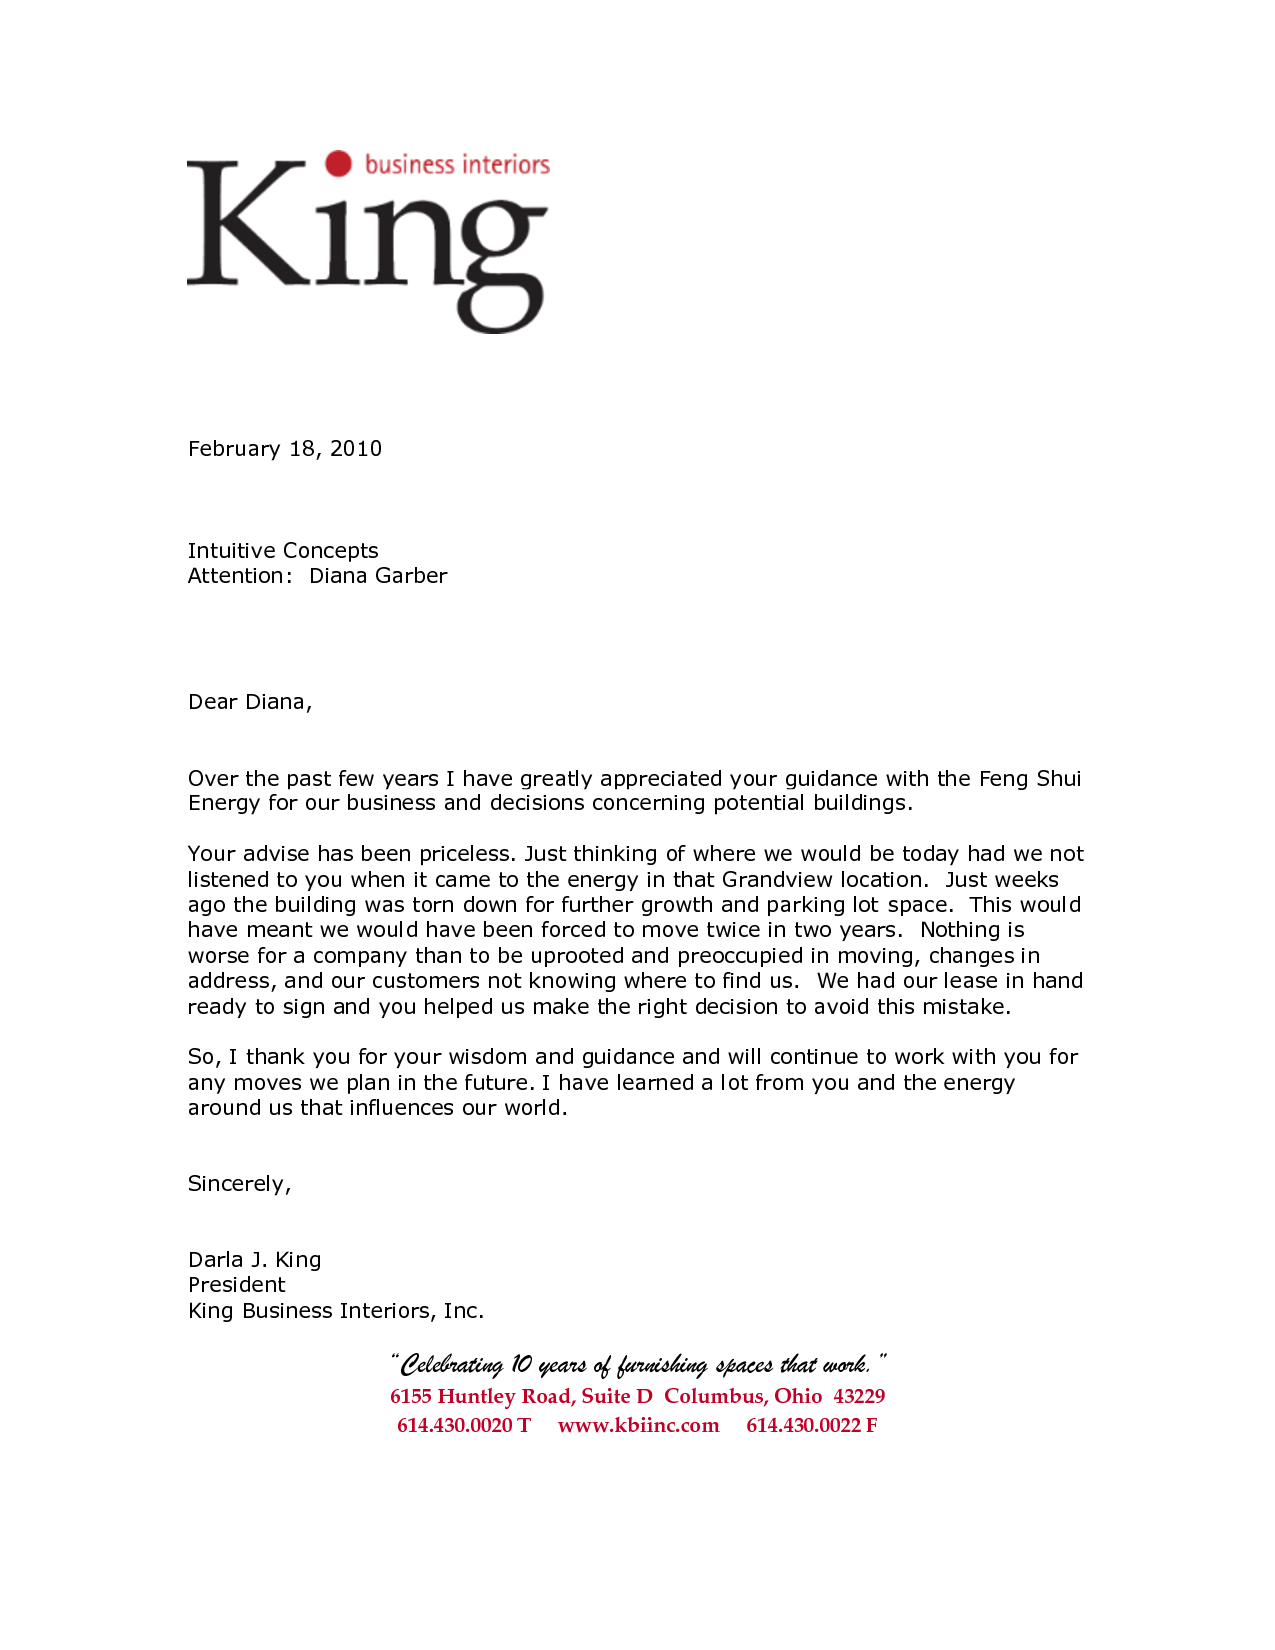 Character Designer Salary Canada : Business letter of reference template king